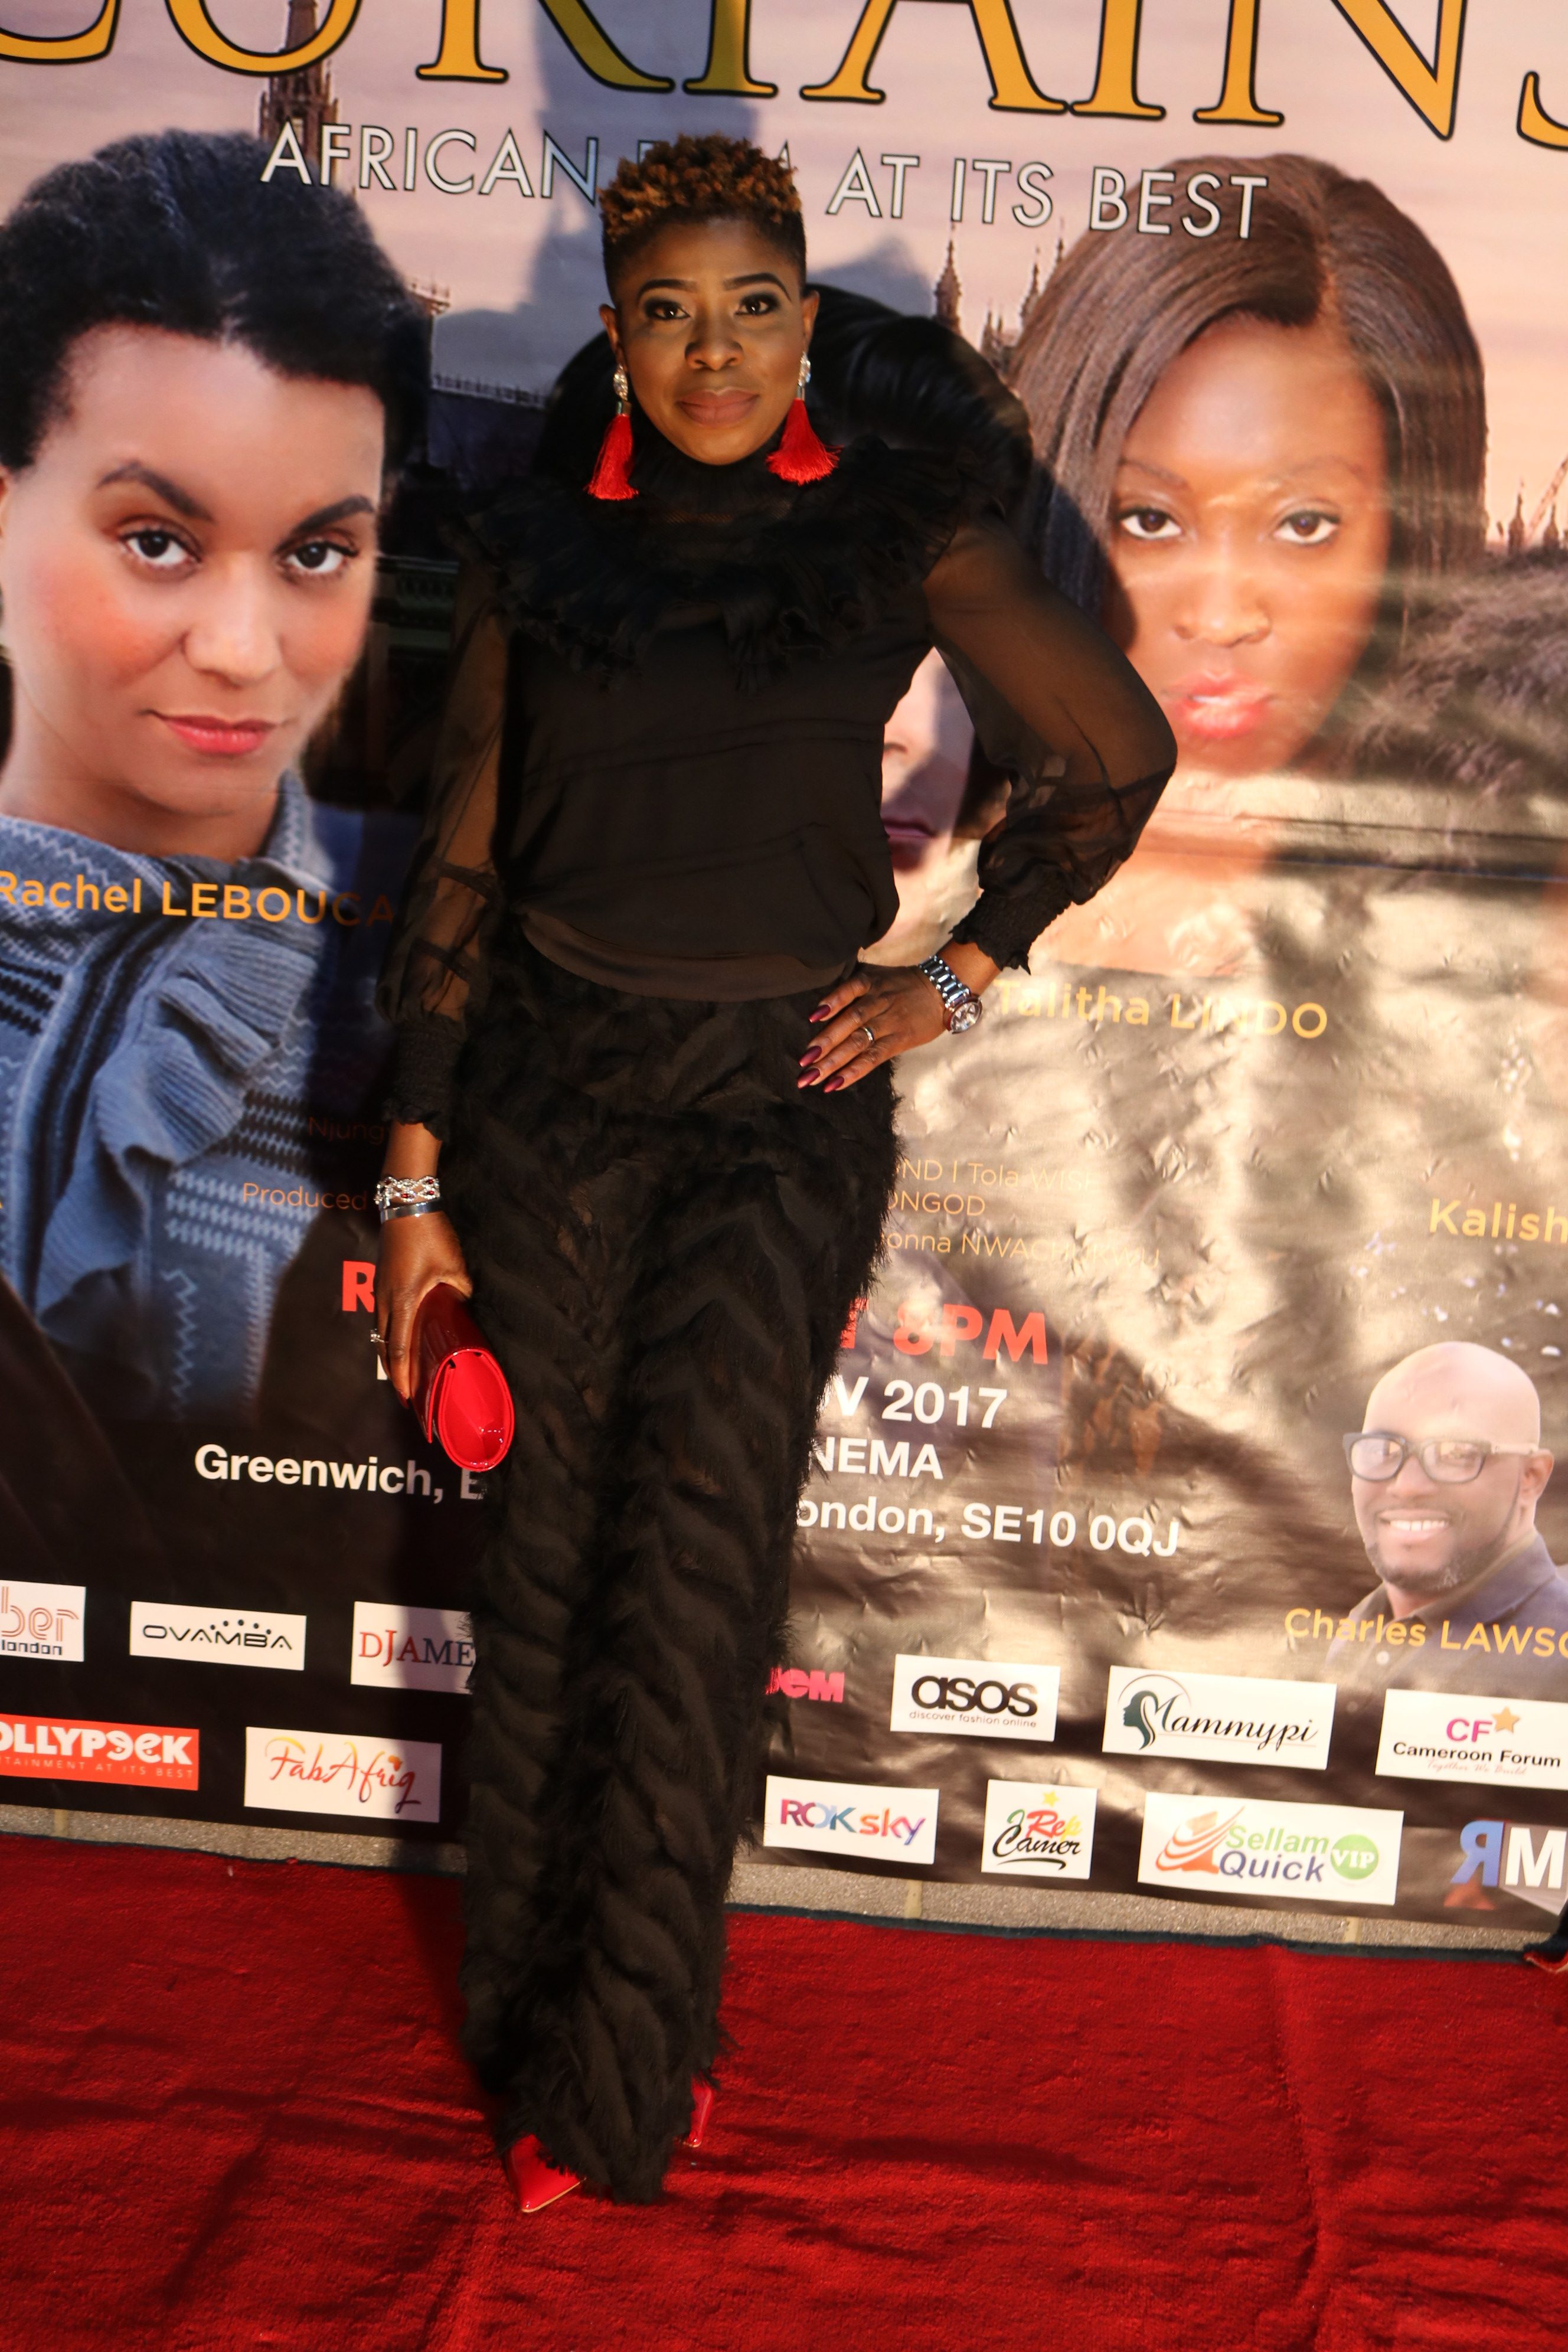 Curtains 2017 Red Carpet: All The Black Outfits